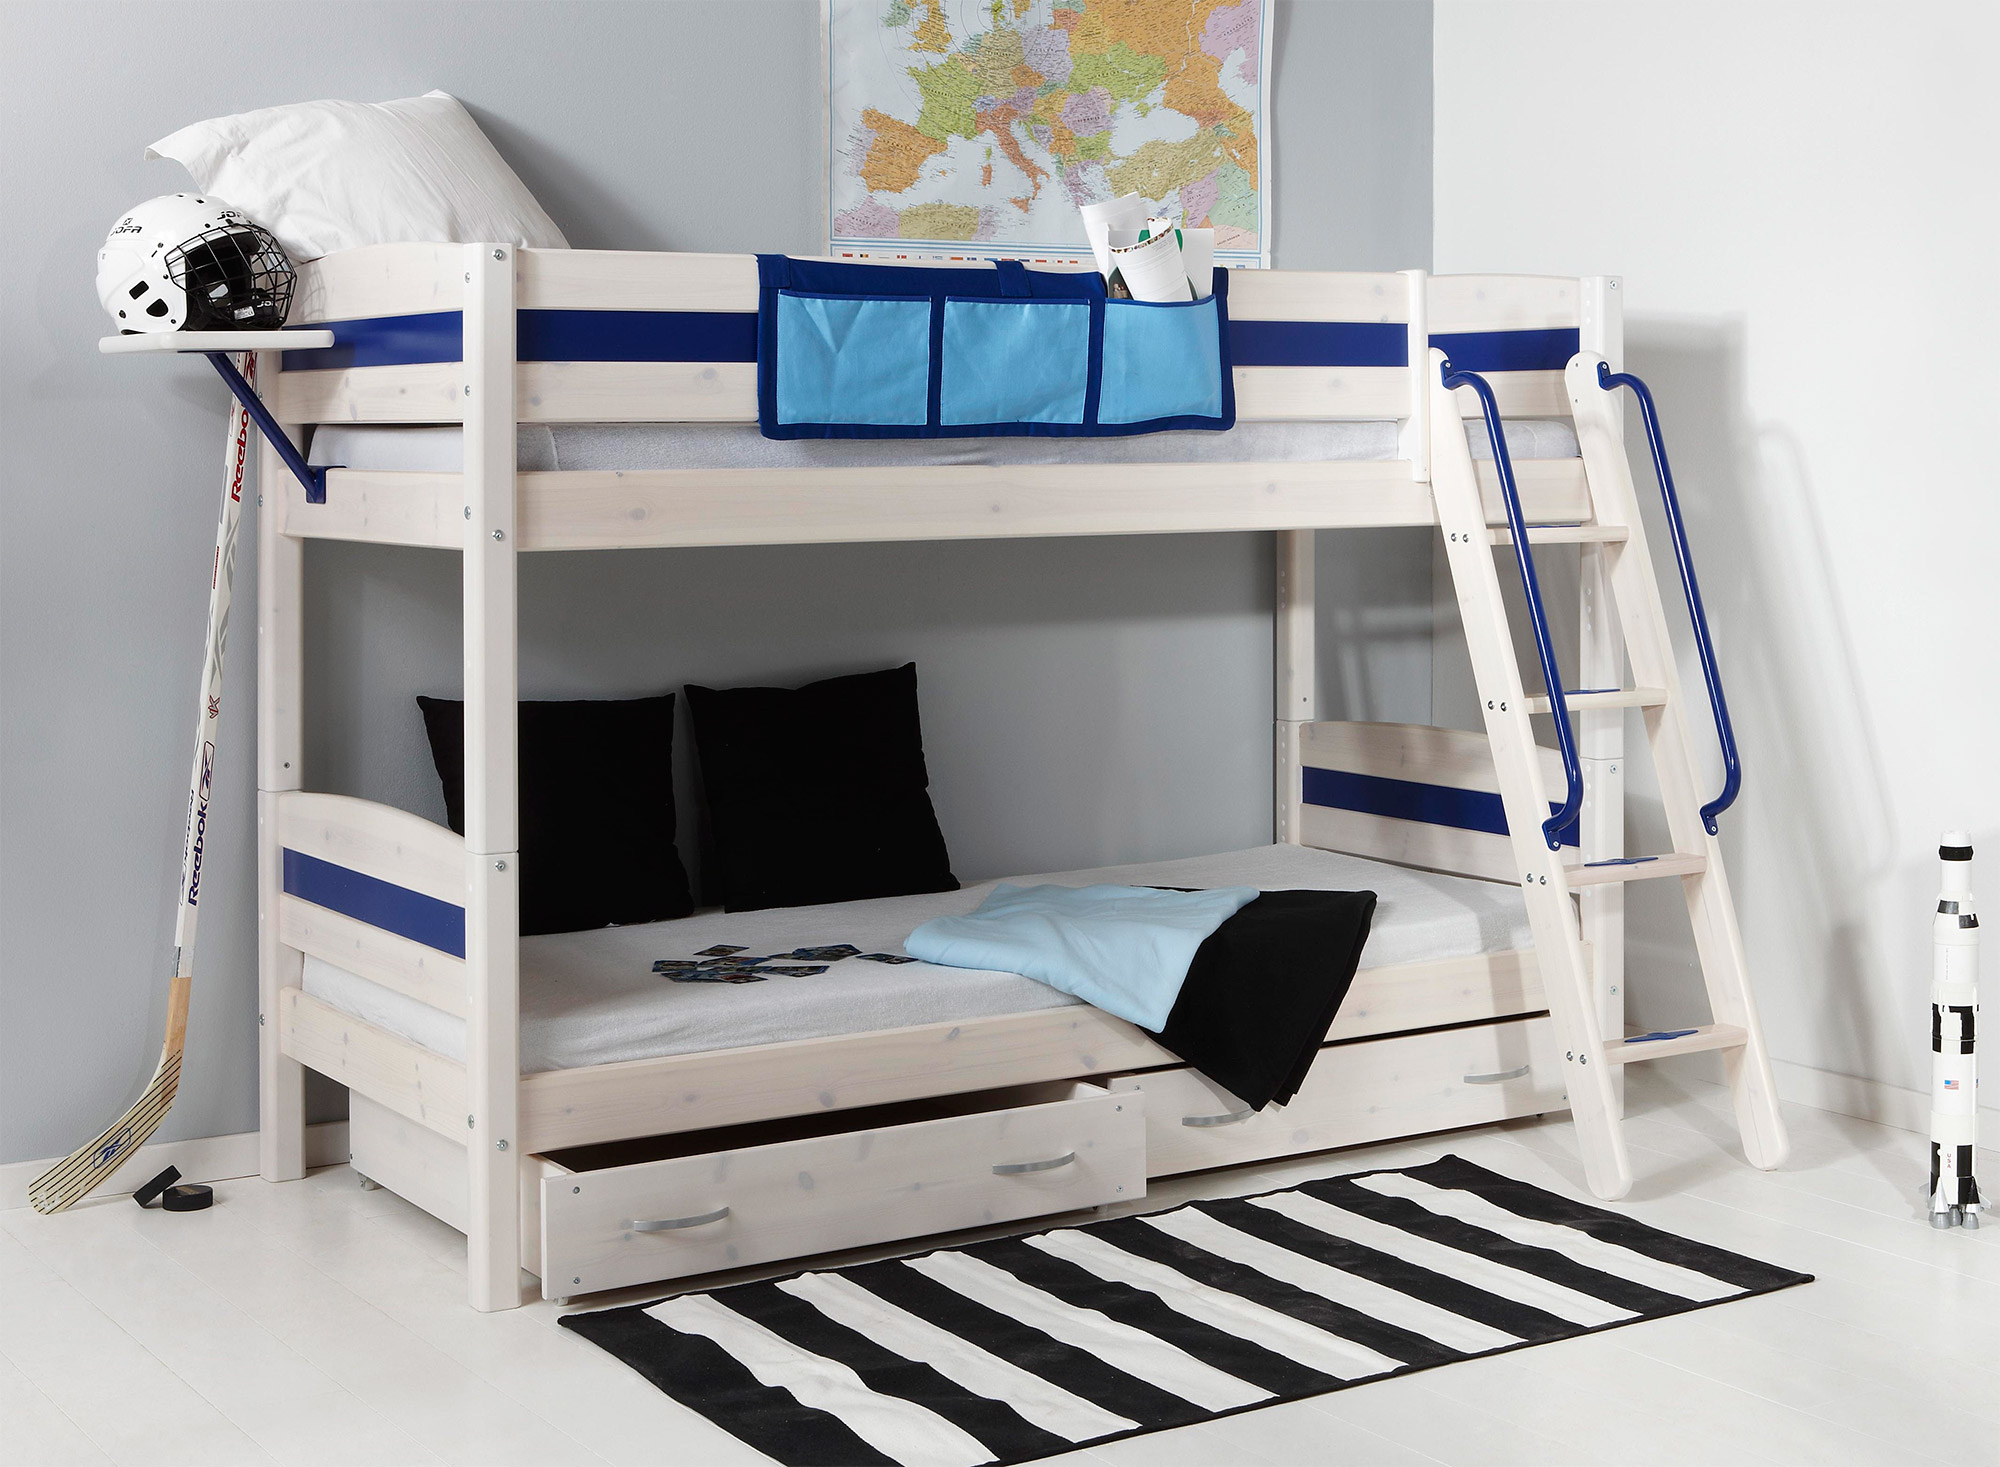 Lively colorful boys room space saving bunk bed designs - Double deck bed designs for small spaces pict ...